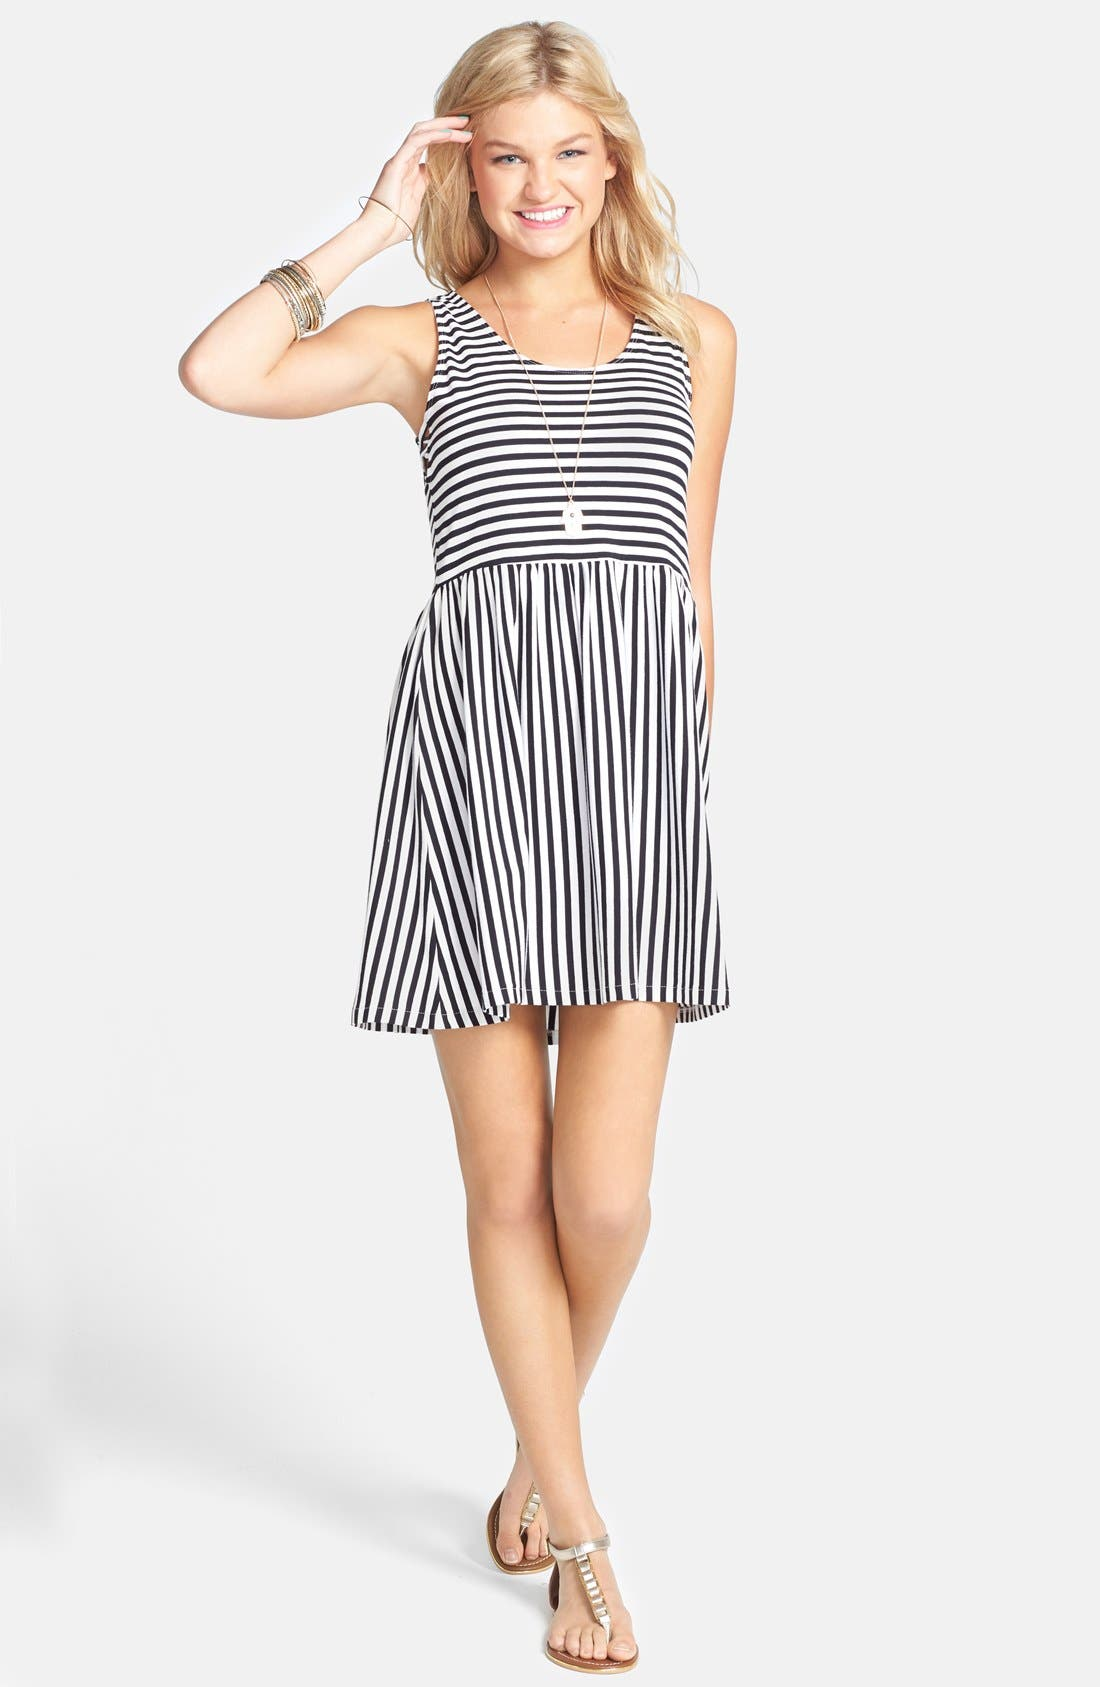 Alternate Image 1 Selected - Billabong 'Early Sunshine' Stripe Skater Dress (Juniors)